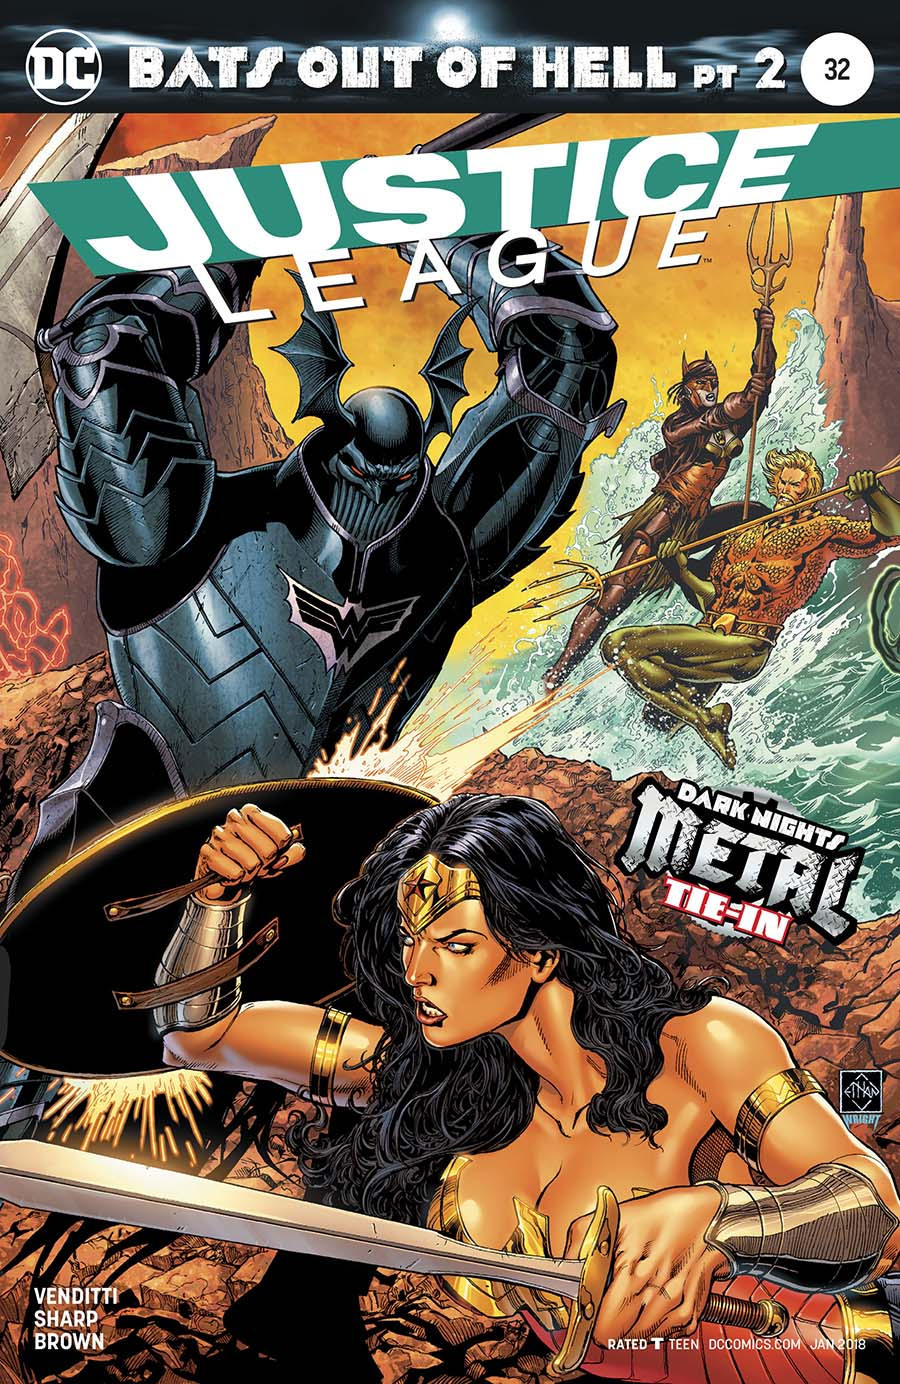 Justice League Vol 3 #32 Cover A Regular Ethan Van Sciver Connecting Cover (Bats Out Of Hell Part 2)(Dark Nights Metal Tie-In)